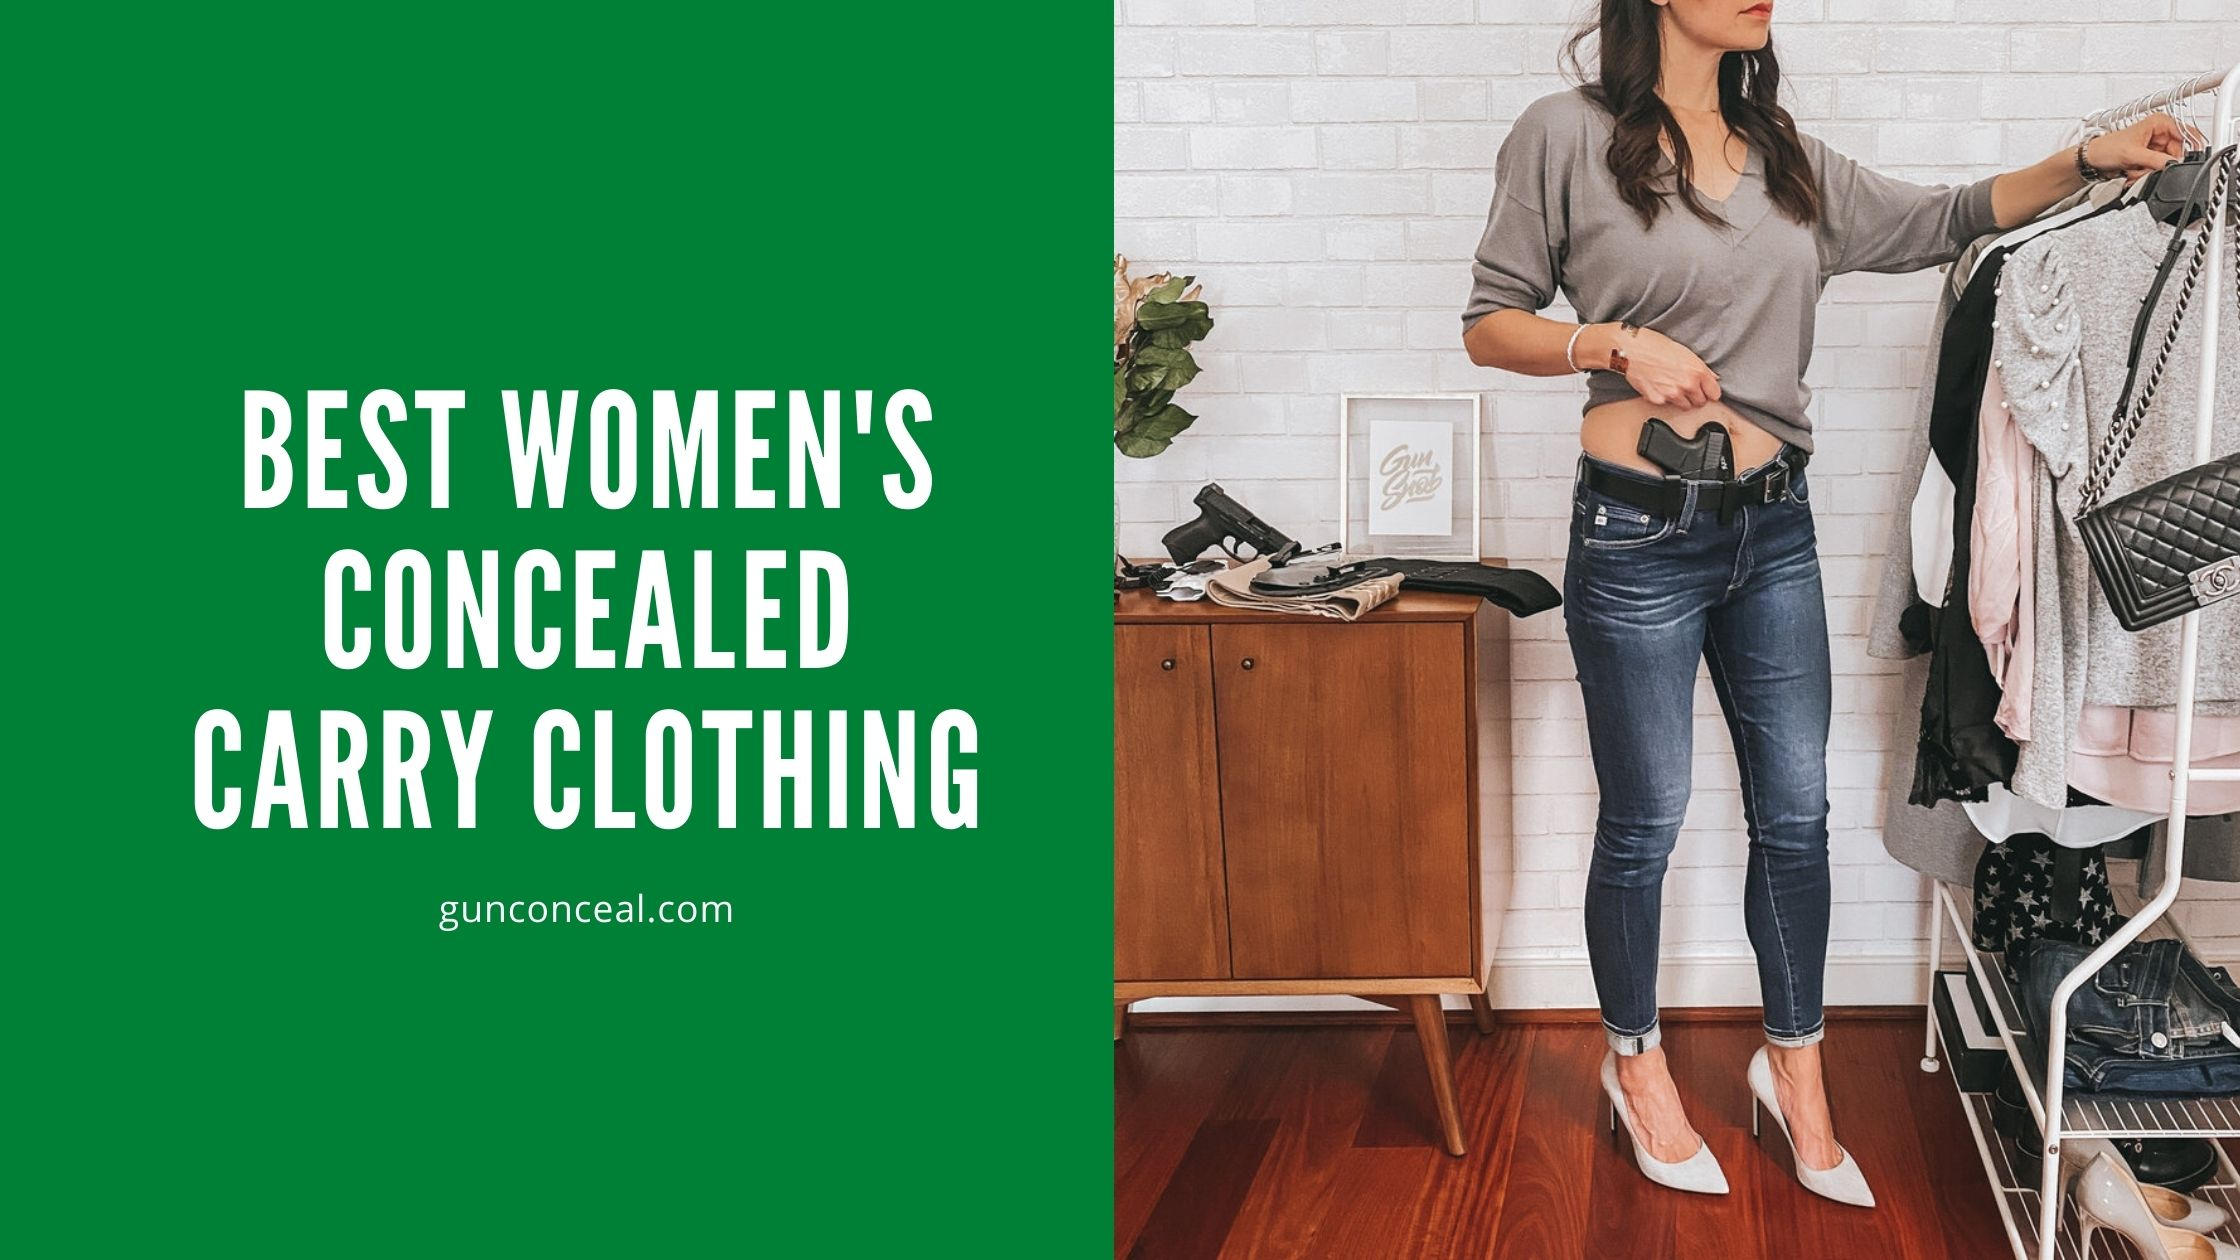 Best women's concealed carry clothing